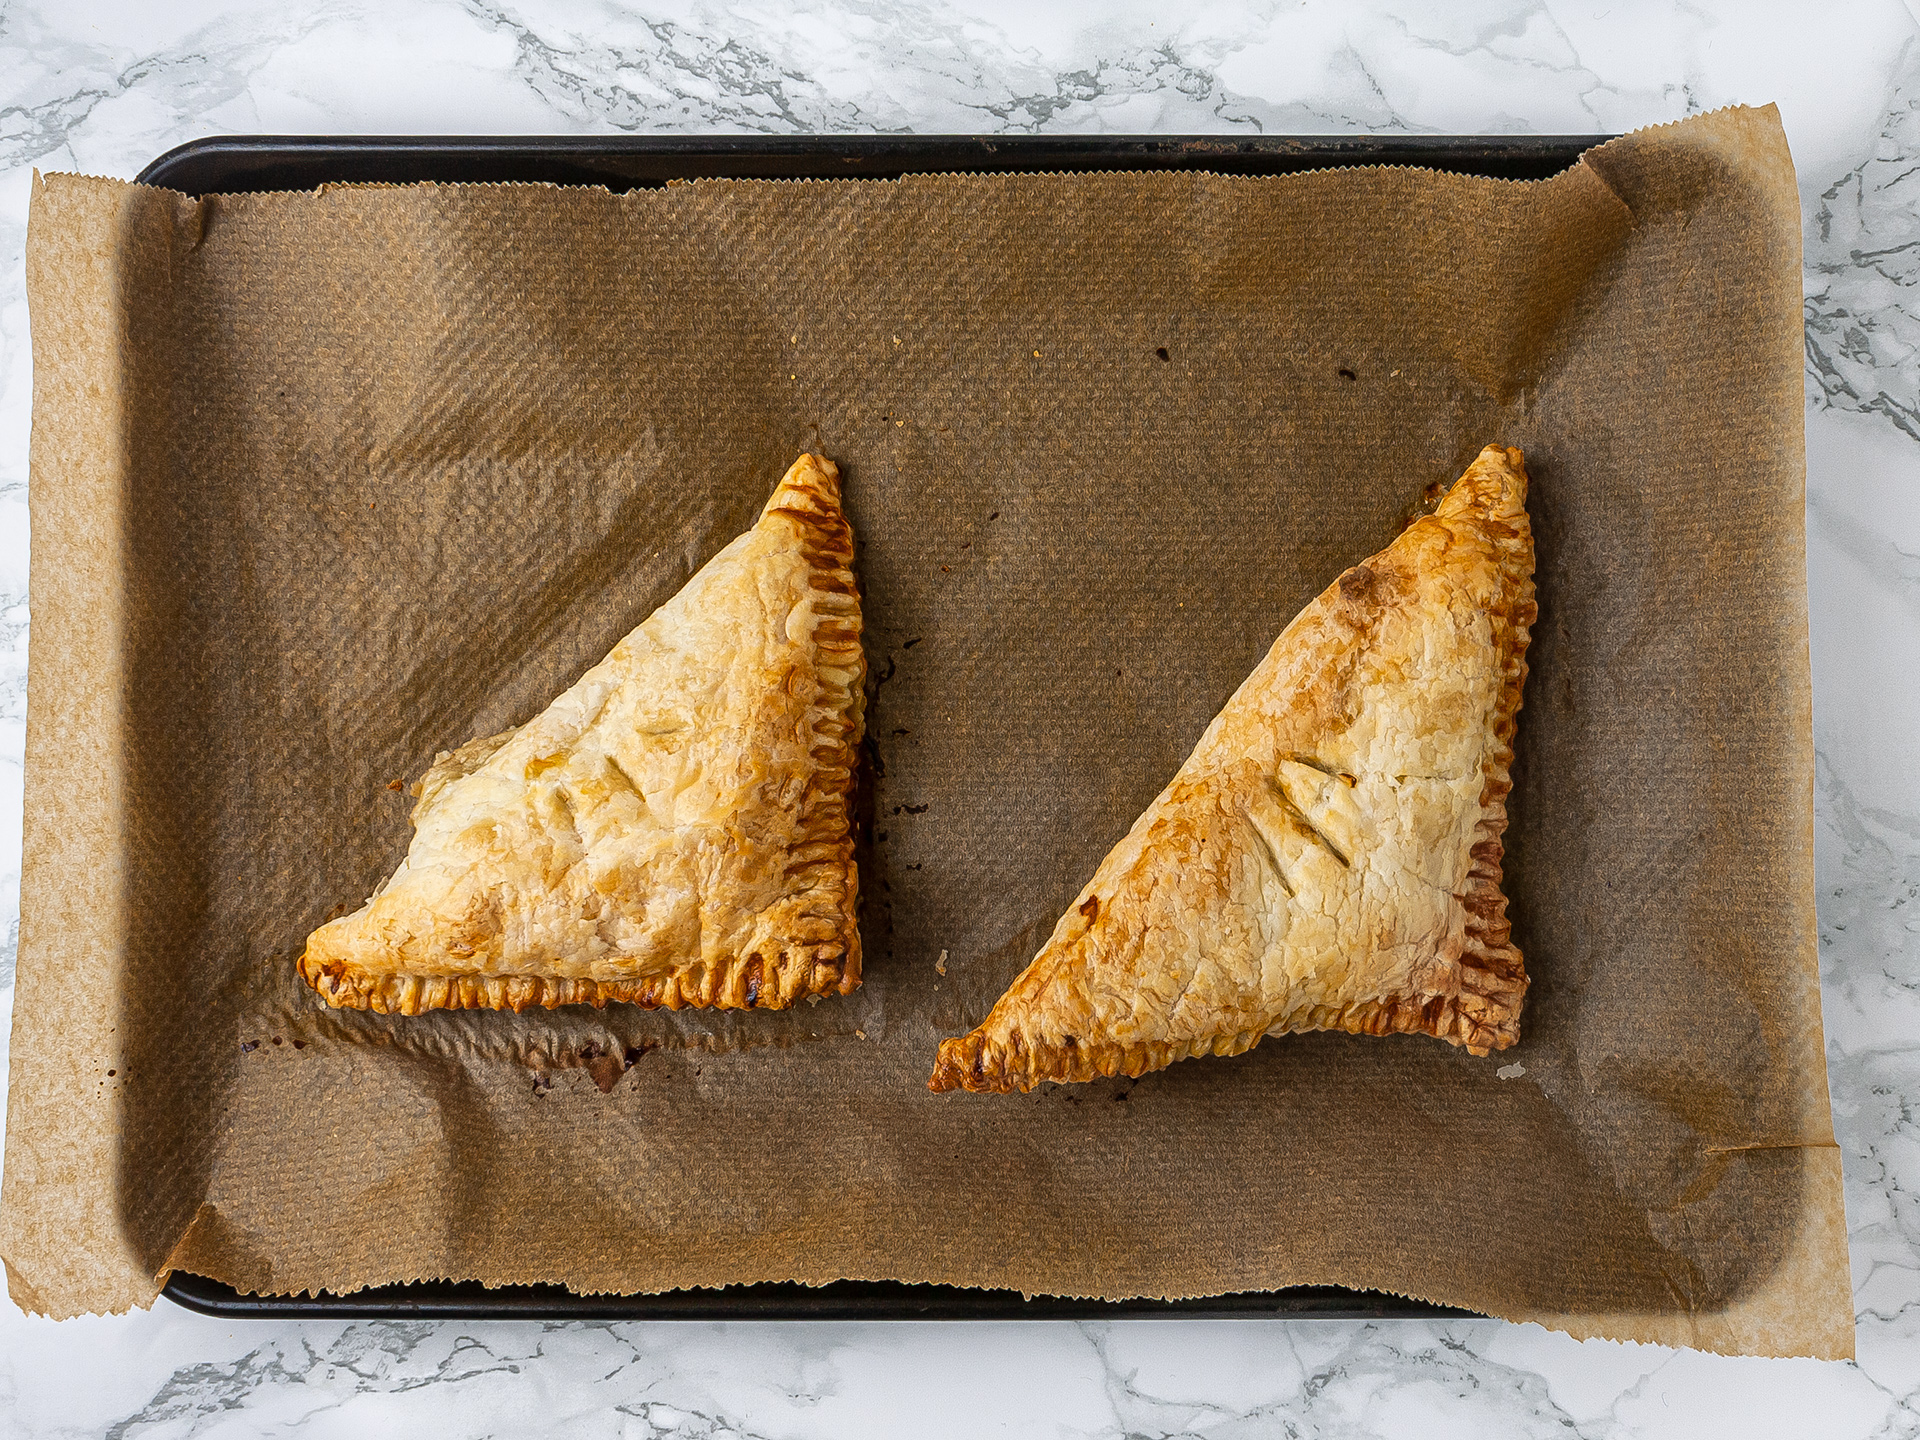 Crispy gluten-free pear turnover with dates pastries baked in the oven